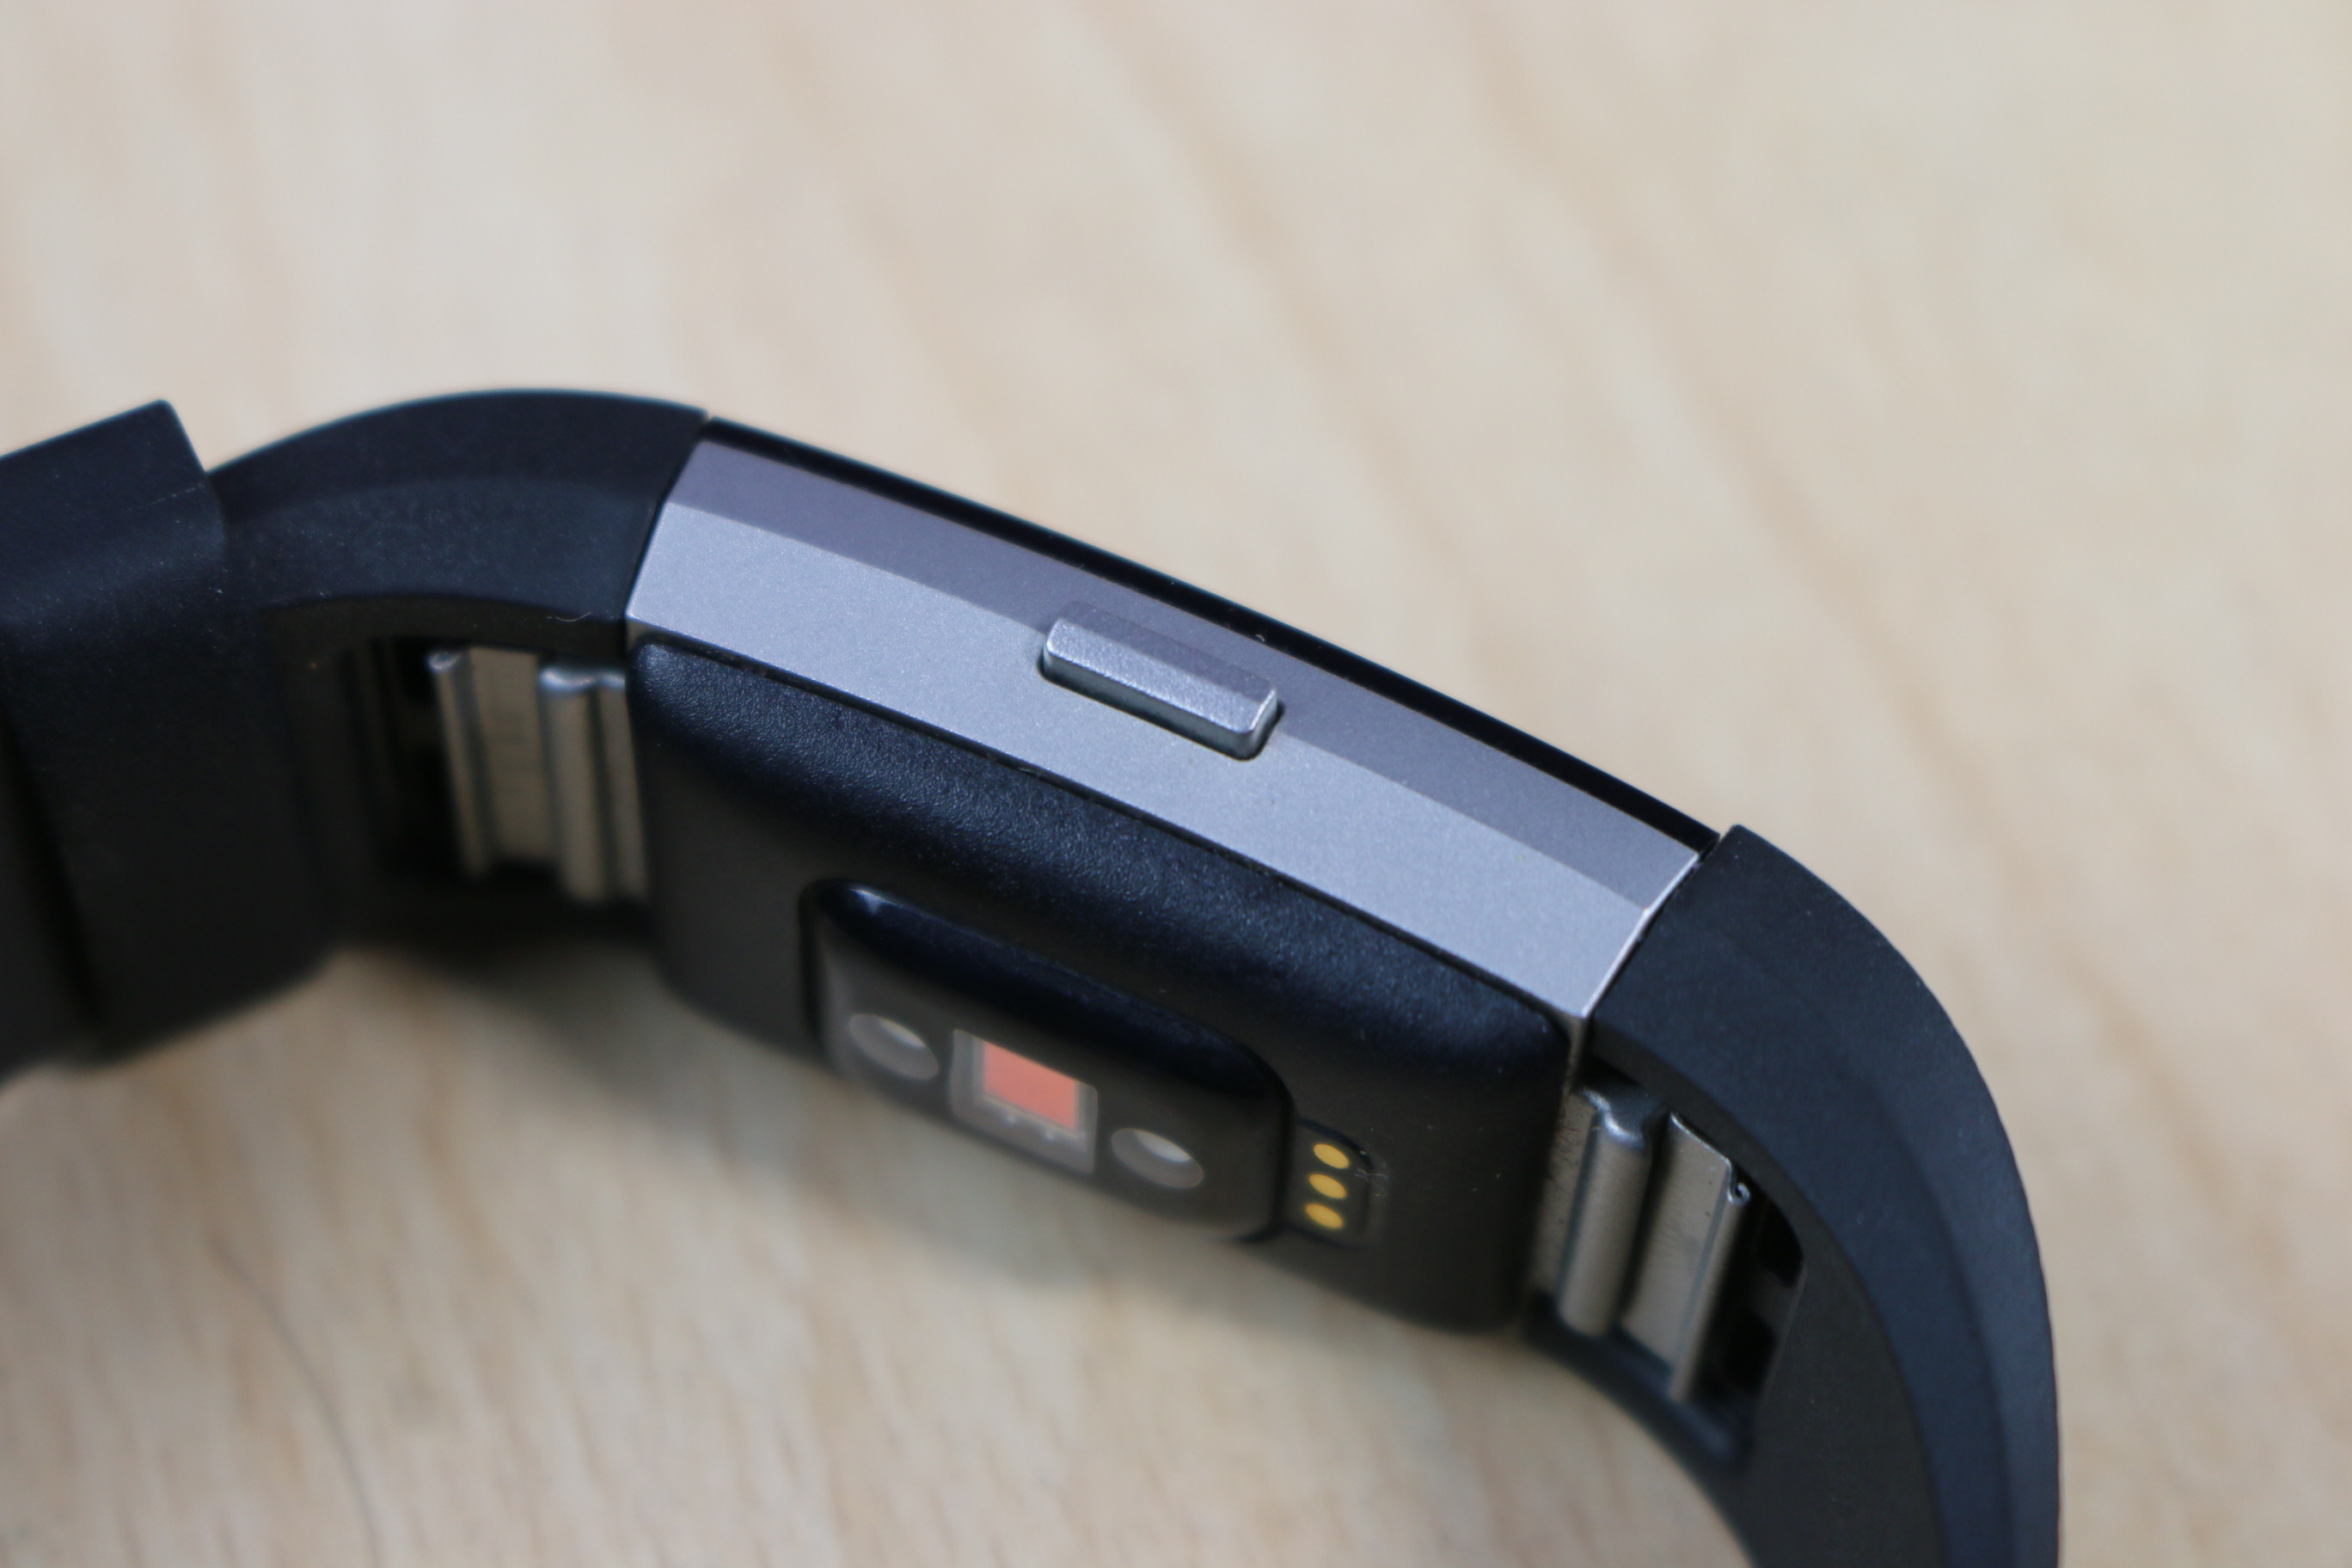 Fitbit Charge 2 Initial Impressions A Worthy Upgrade